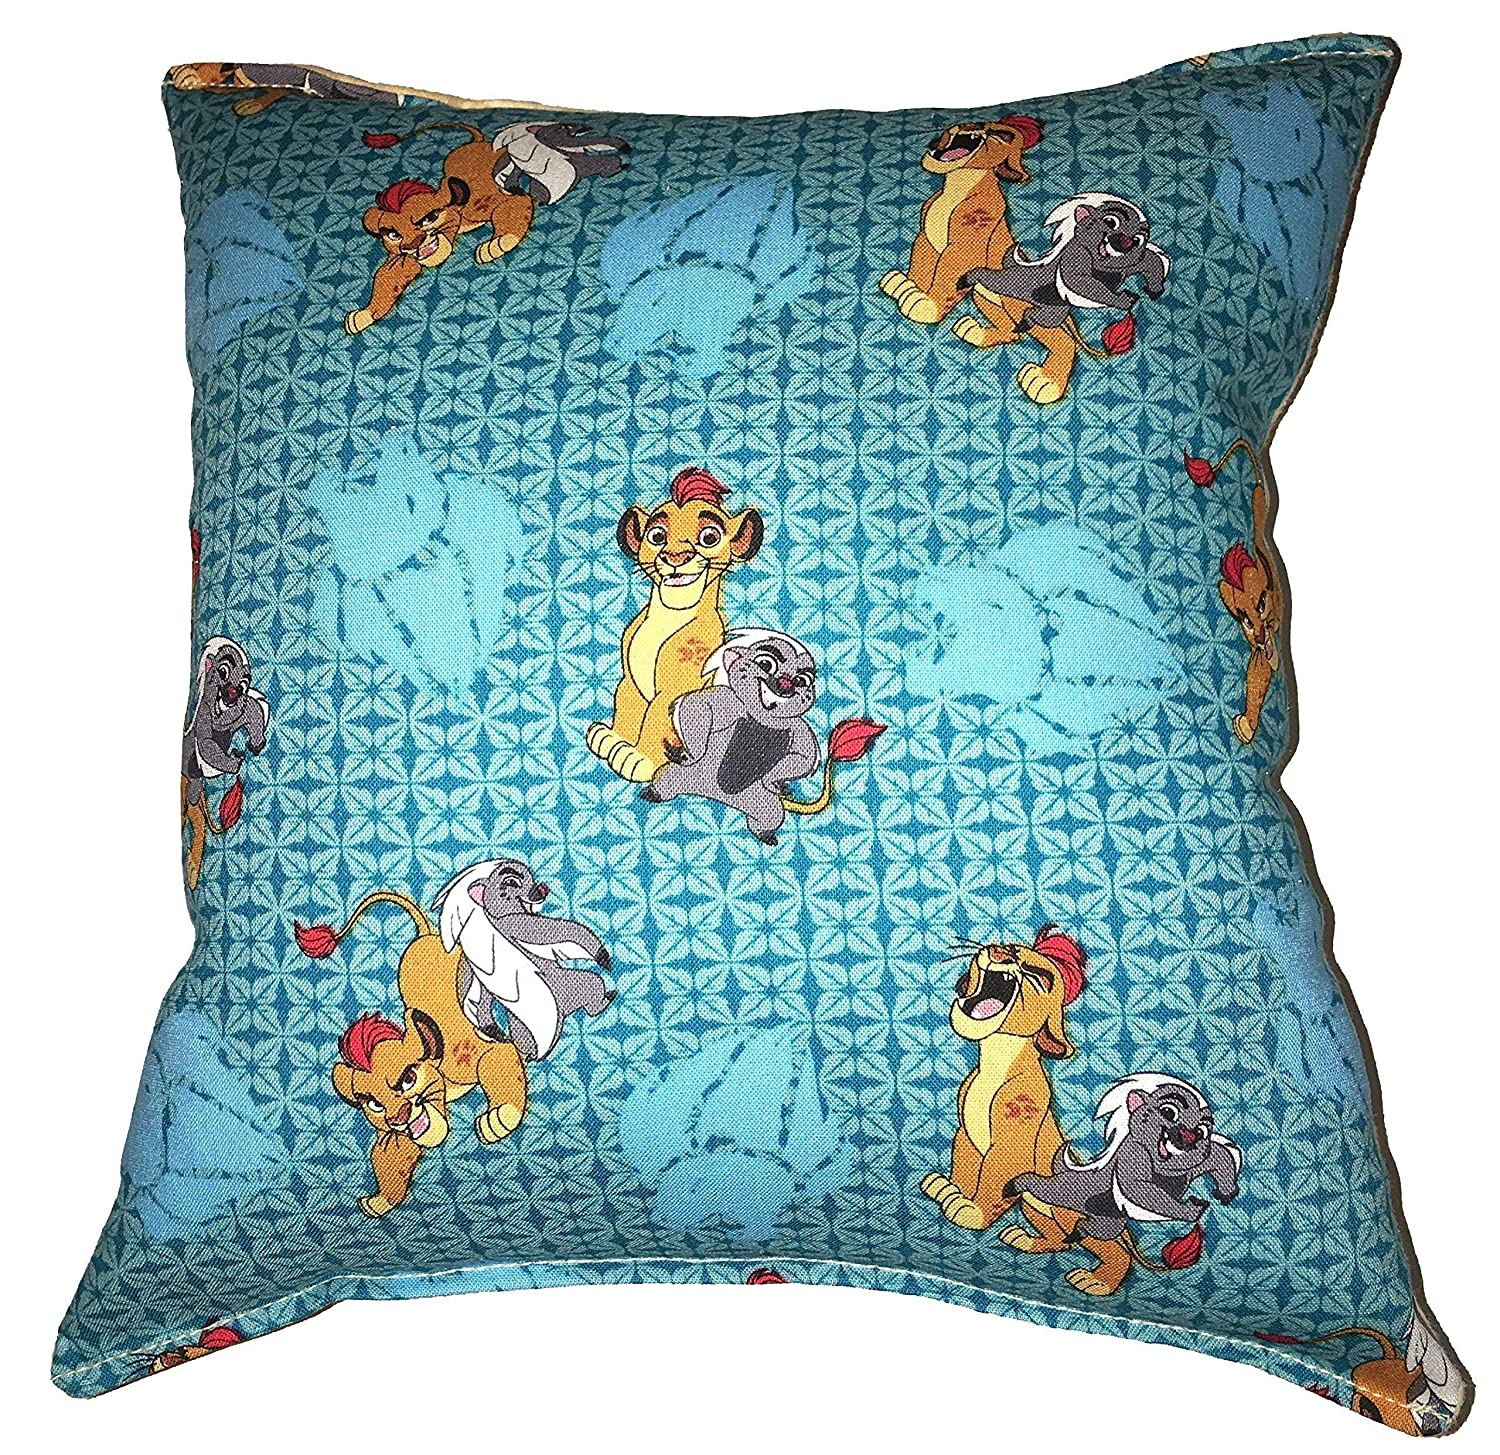 Lion Guard Pillow Kion and Bunga Are Our OFFicial site Hand All Pillows New product! New type